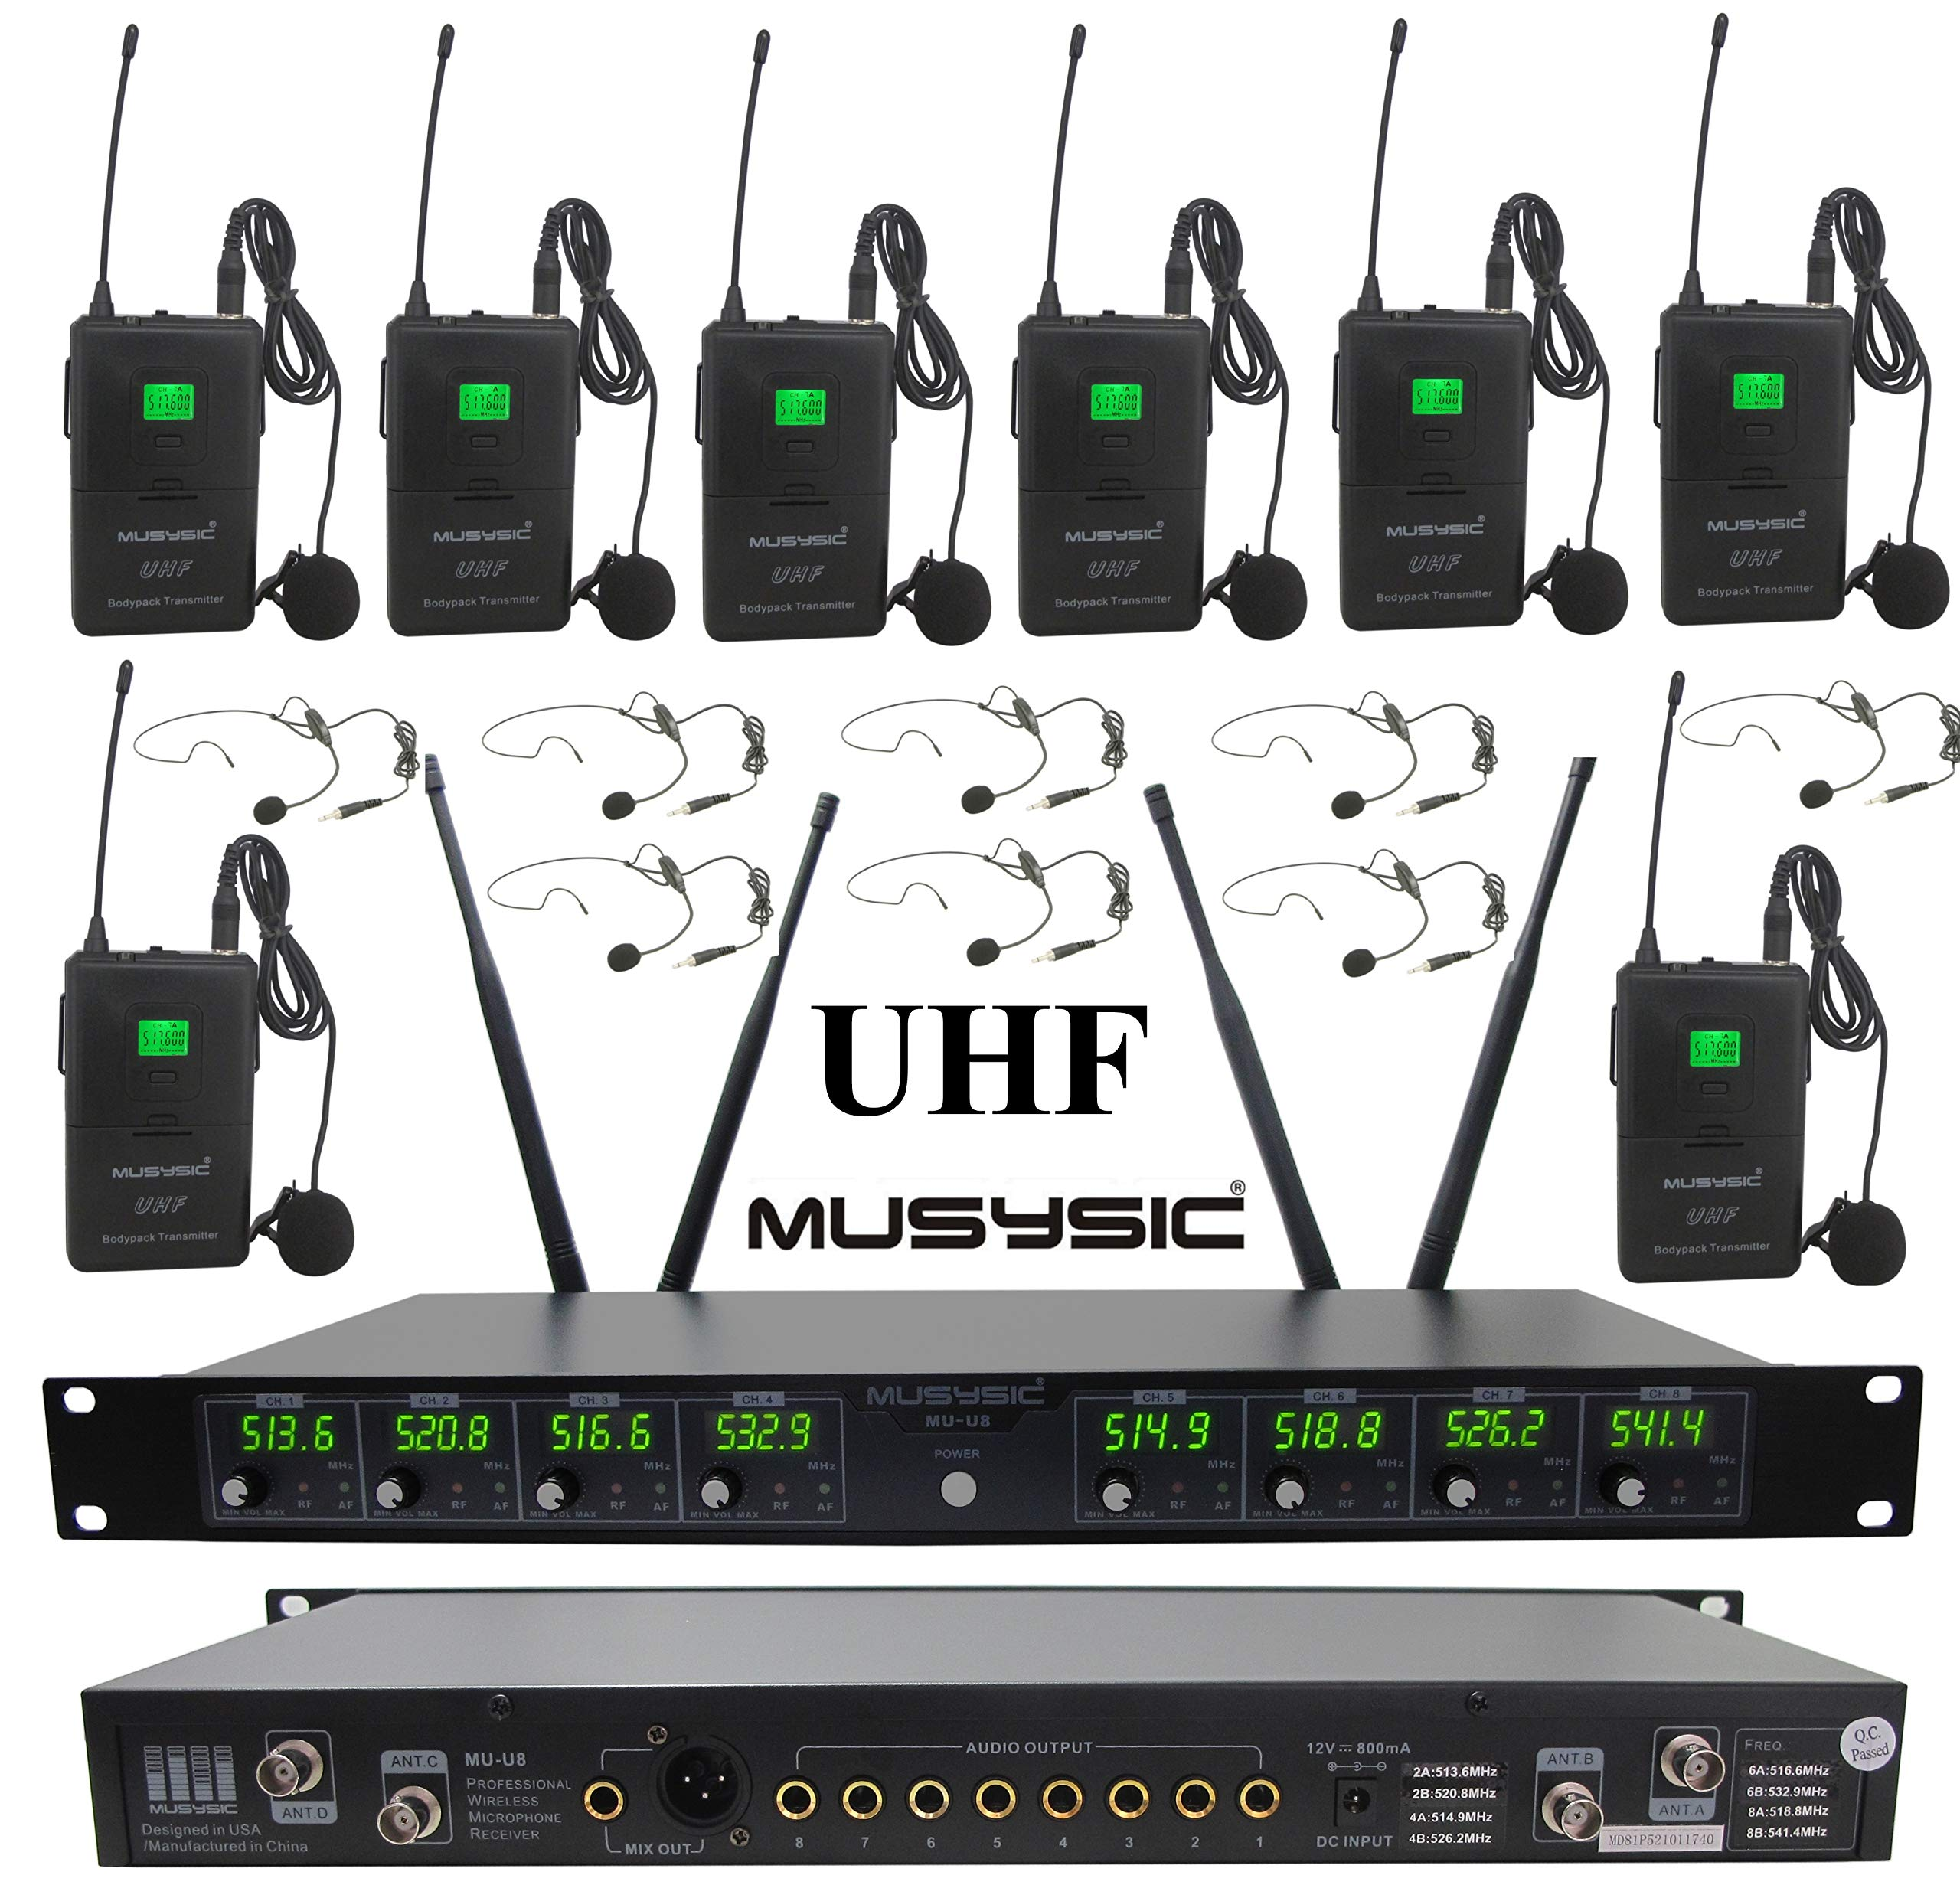 MUSYSIC MU-U8-LL Professional 8-Channels UHF Lapel Lavalier & Headset Wireless Microphone System (FCC Compliance) by MUSYSIC